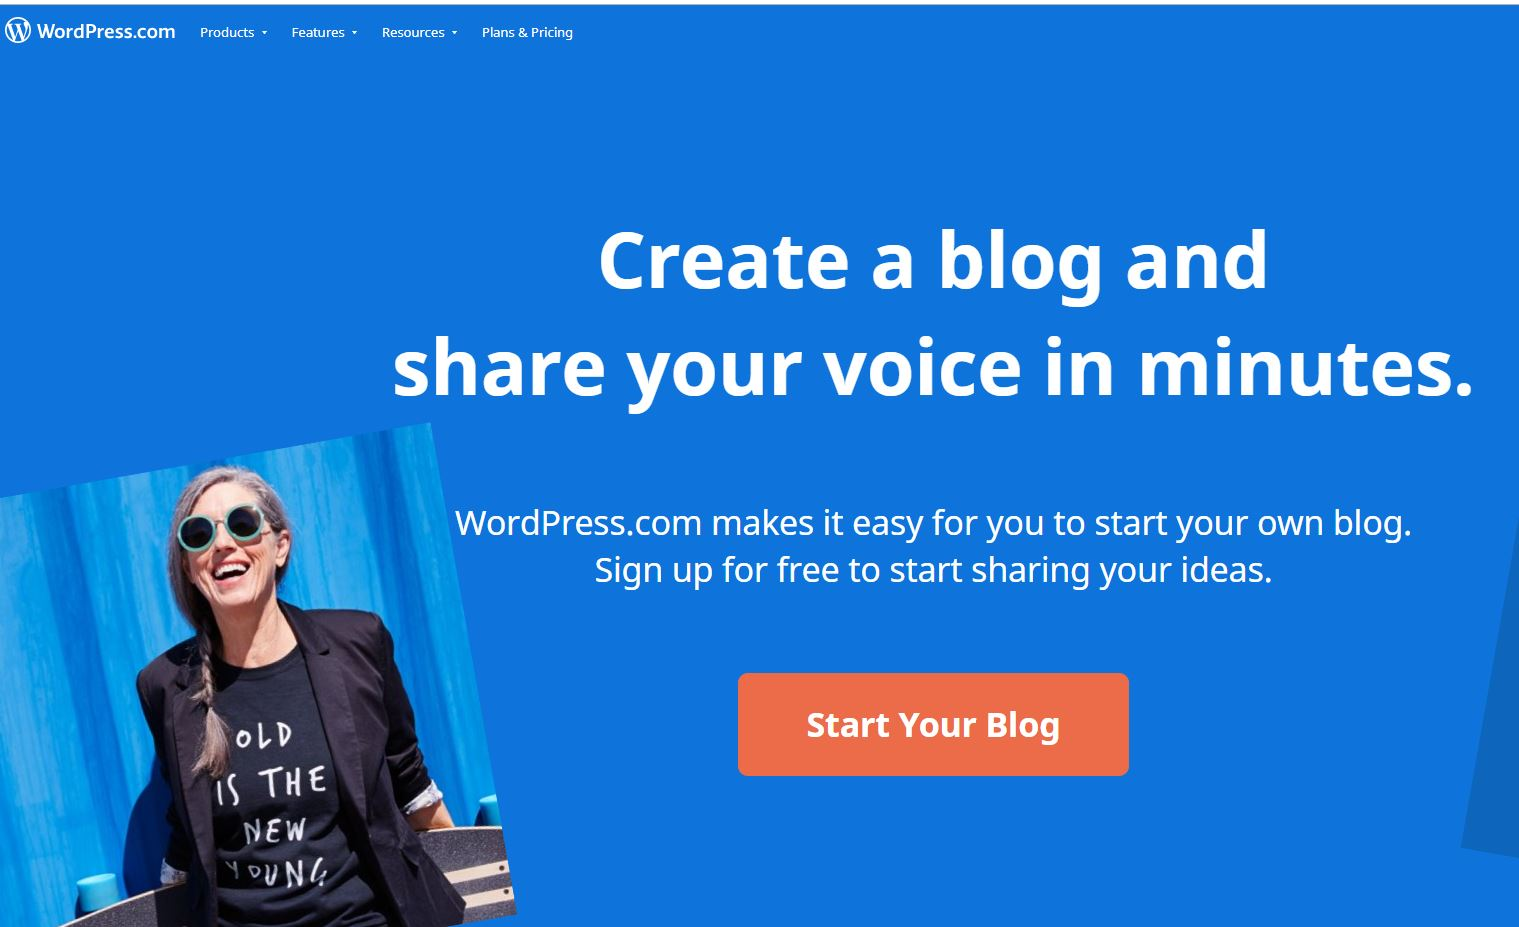 How to start a WordPress blog - a step-by-step guide for starting a blog and make up to $50,000 or more every month. How to start a wordpress blog, start a blog, start a wordpress blog, start a blog from scratch, start a blog on WordPress, how to start a blog, how to start a blog and make money, how to start a blog for free, make money online